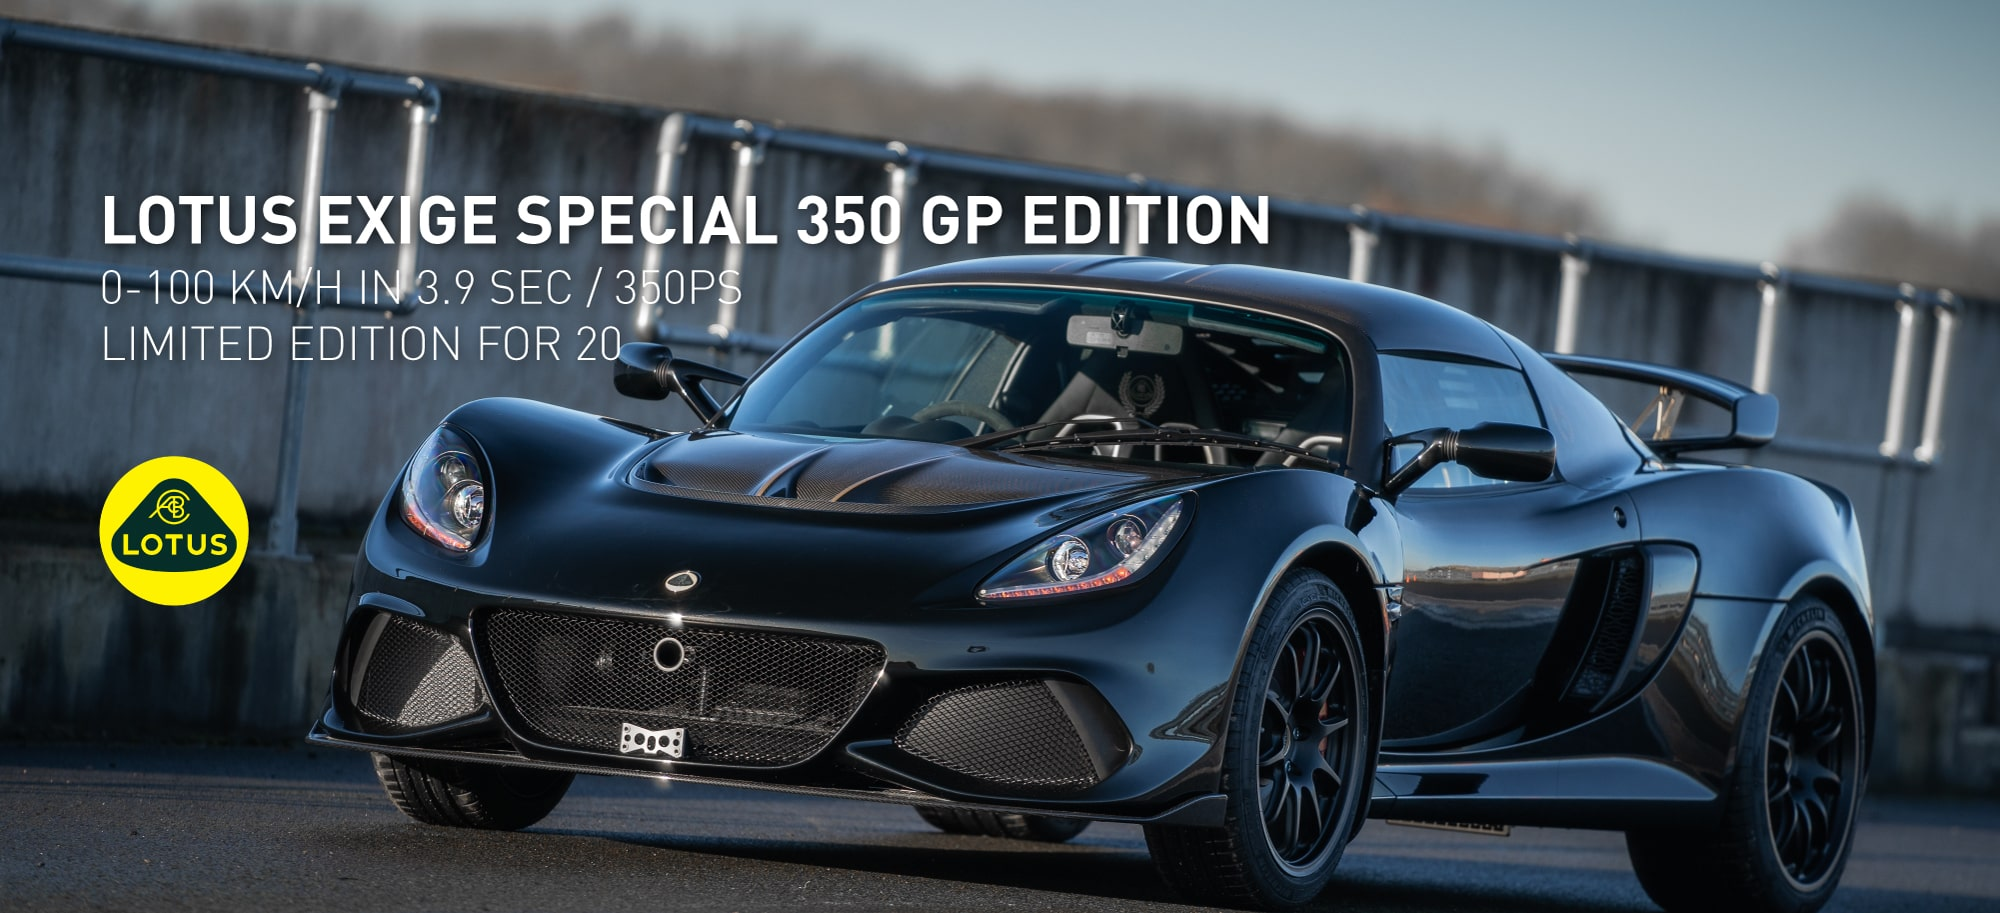 LOTUS EXIGE SPORT 350 GP EDITION